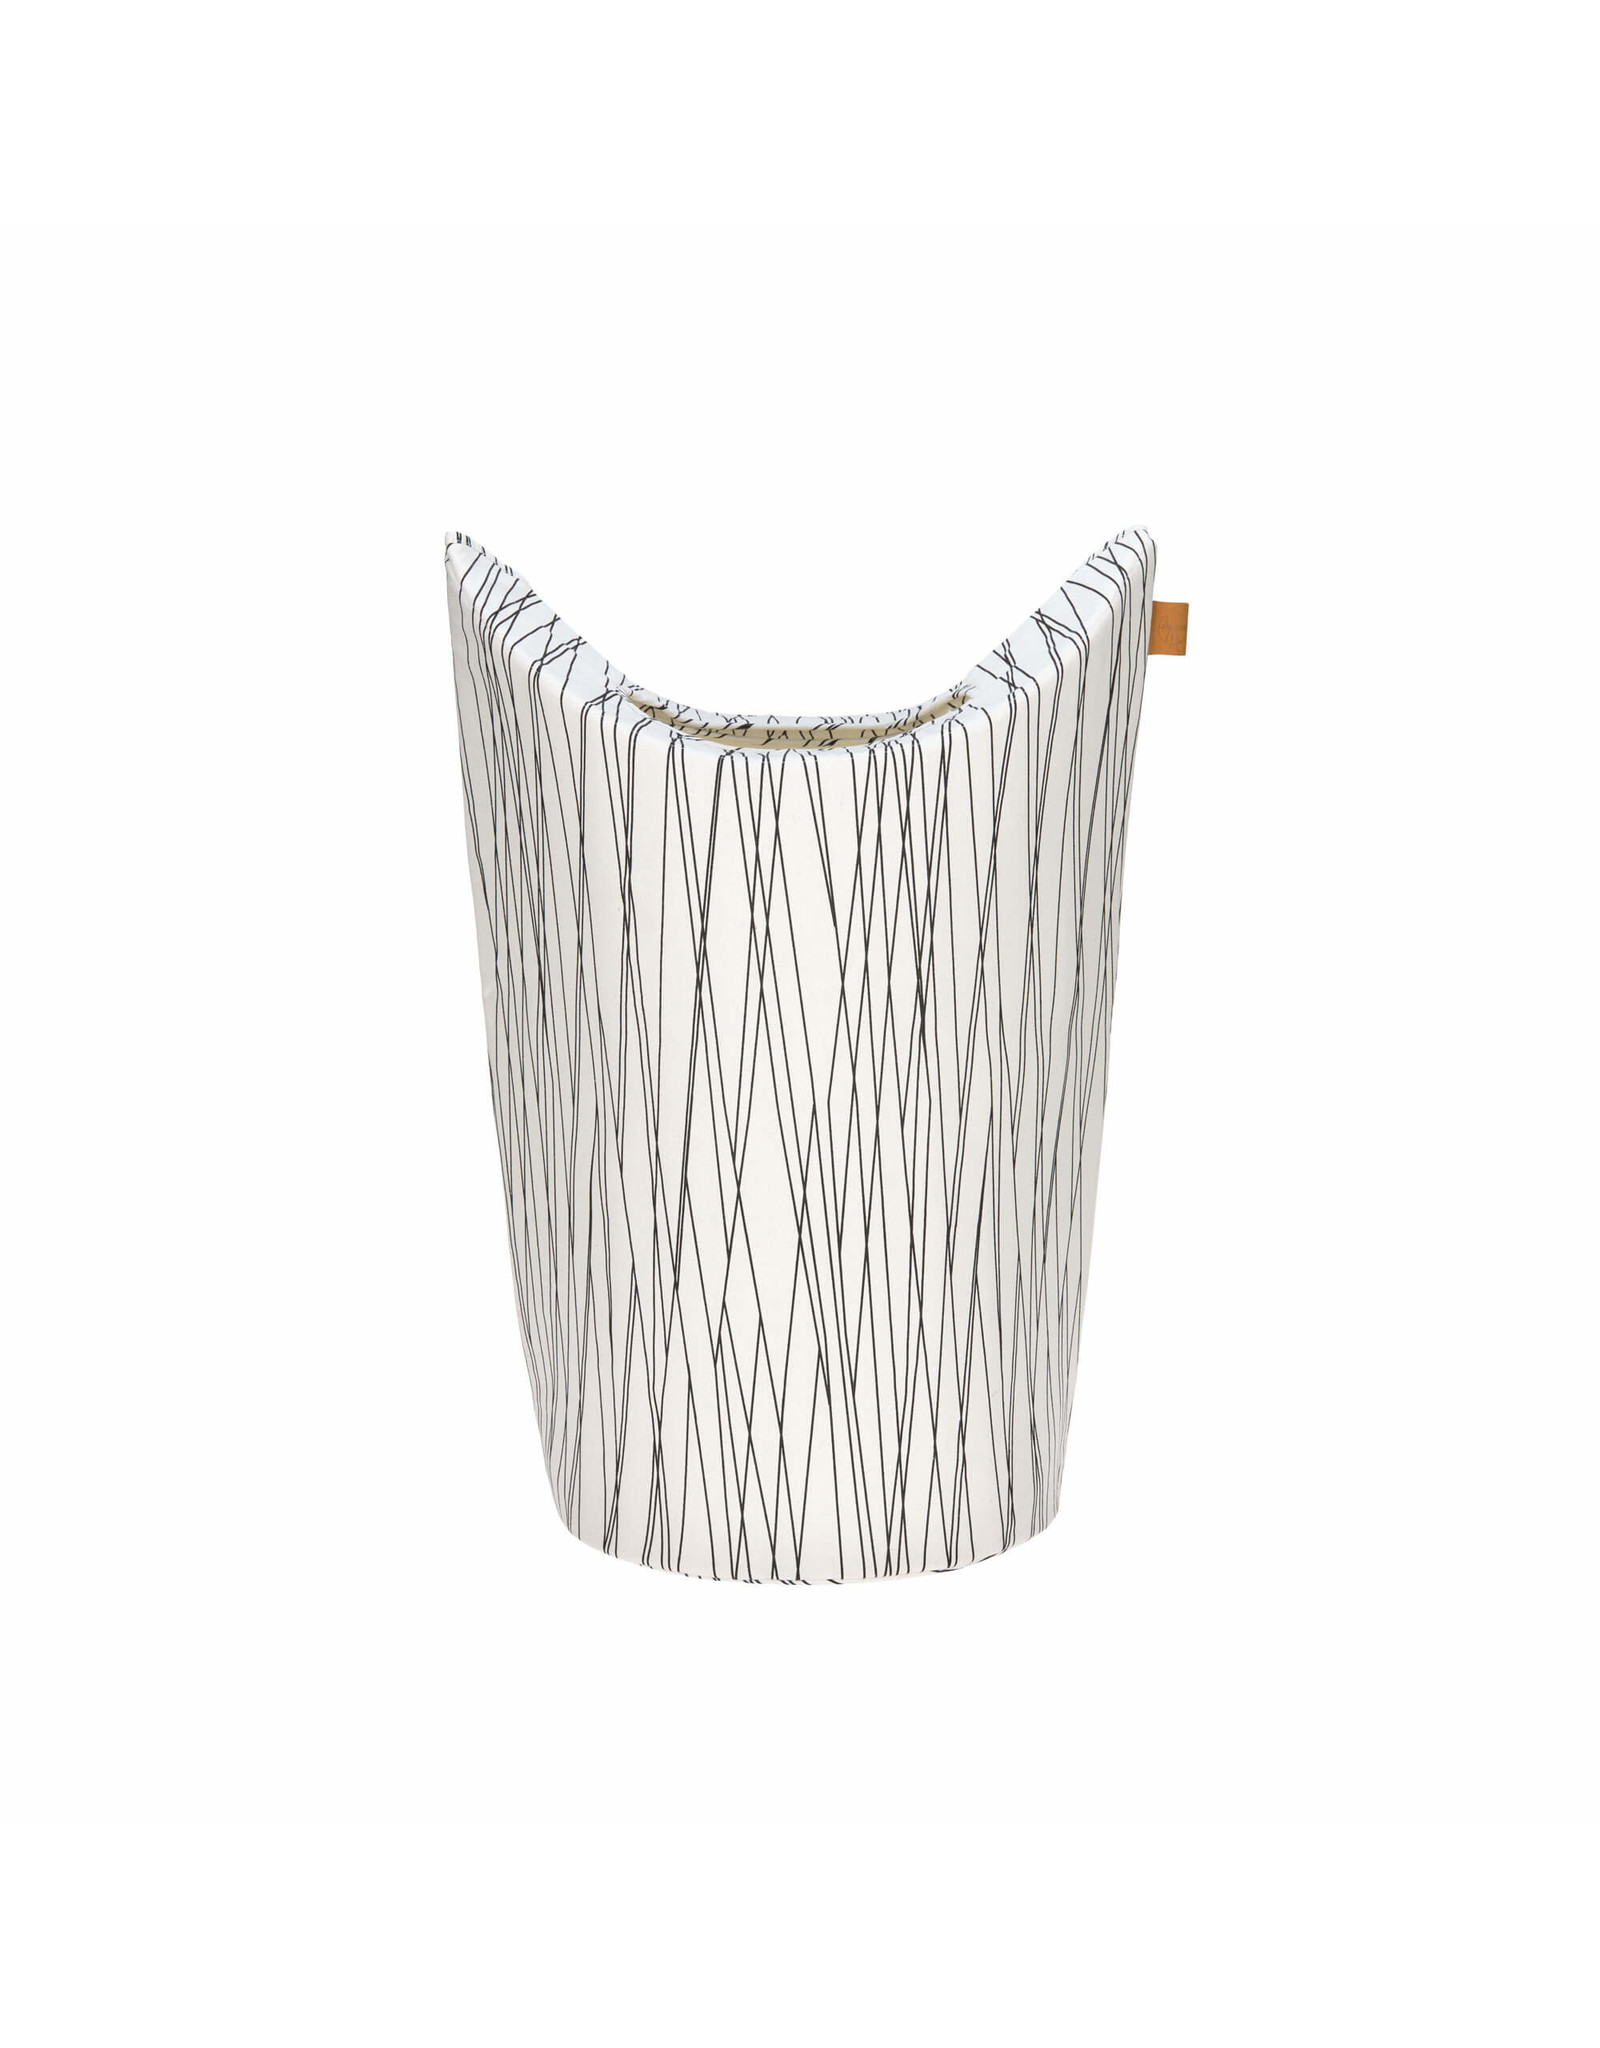 Lassig Lassig Laundry Bag Allover Rays